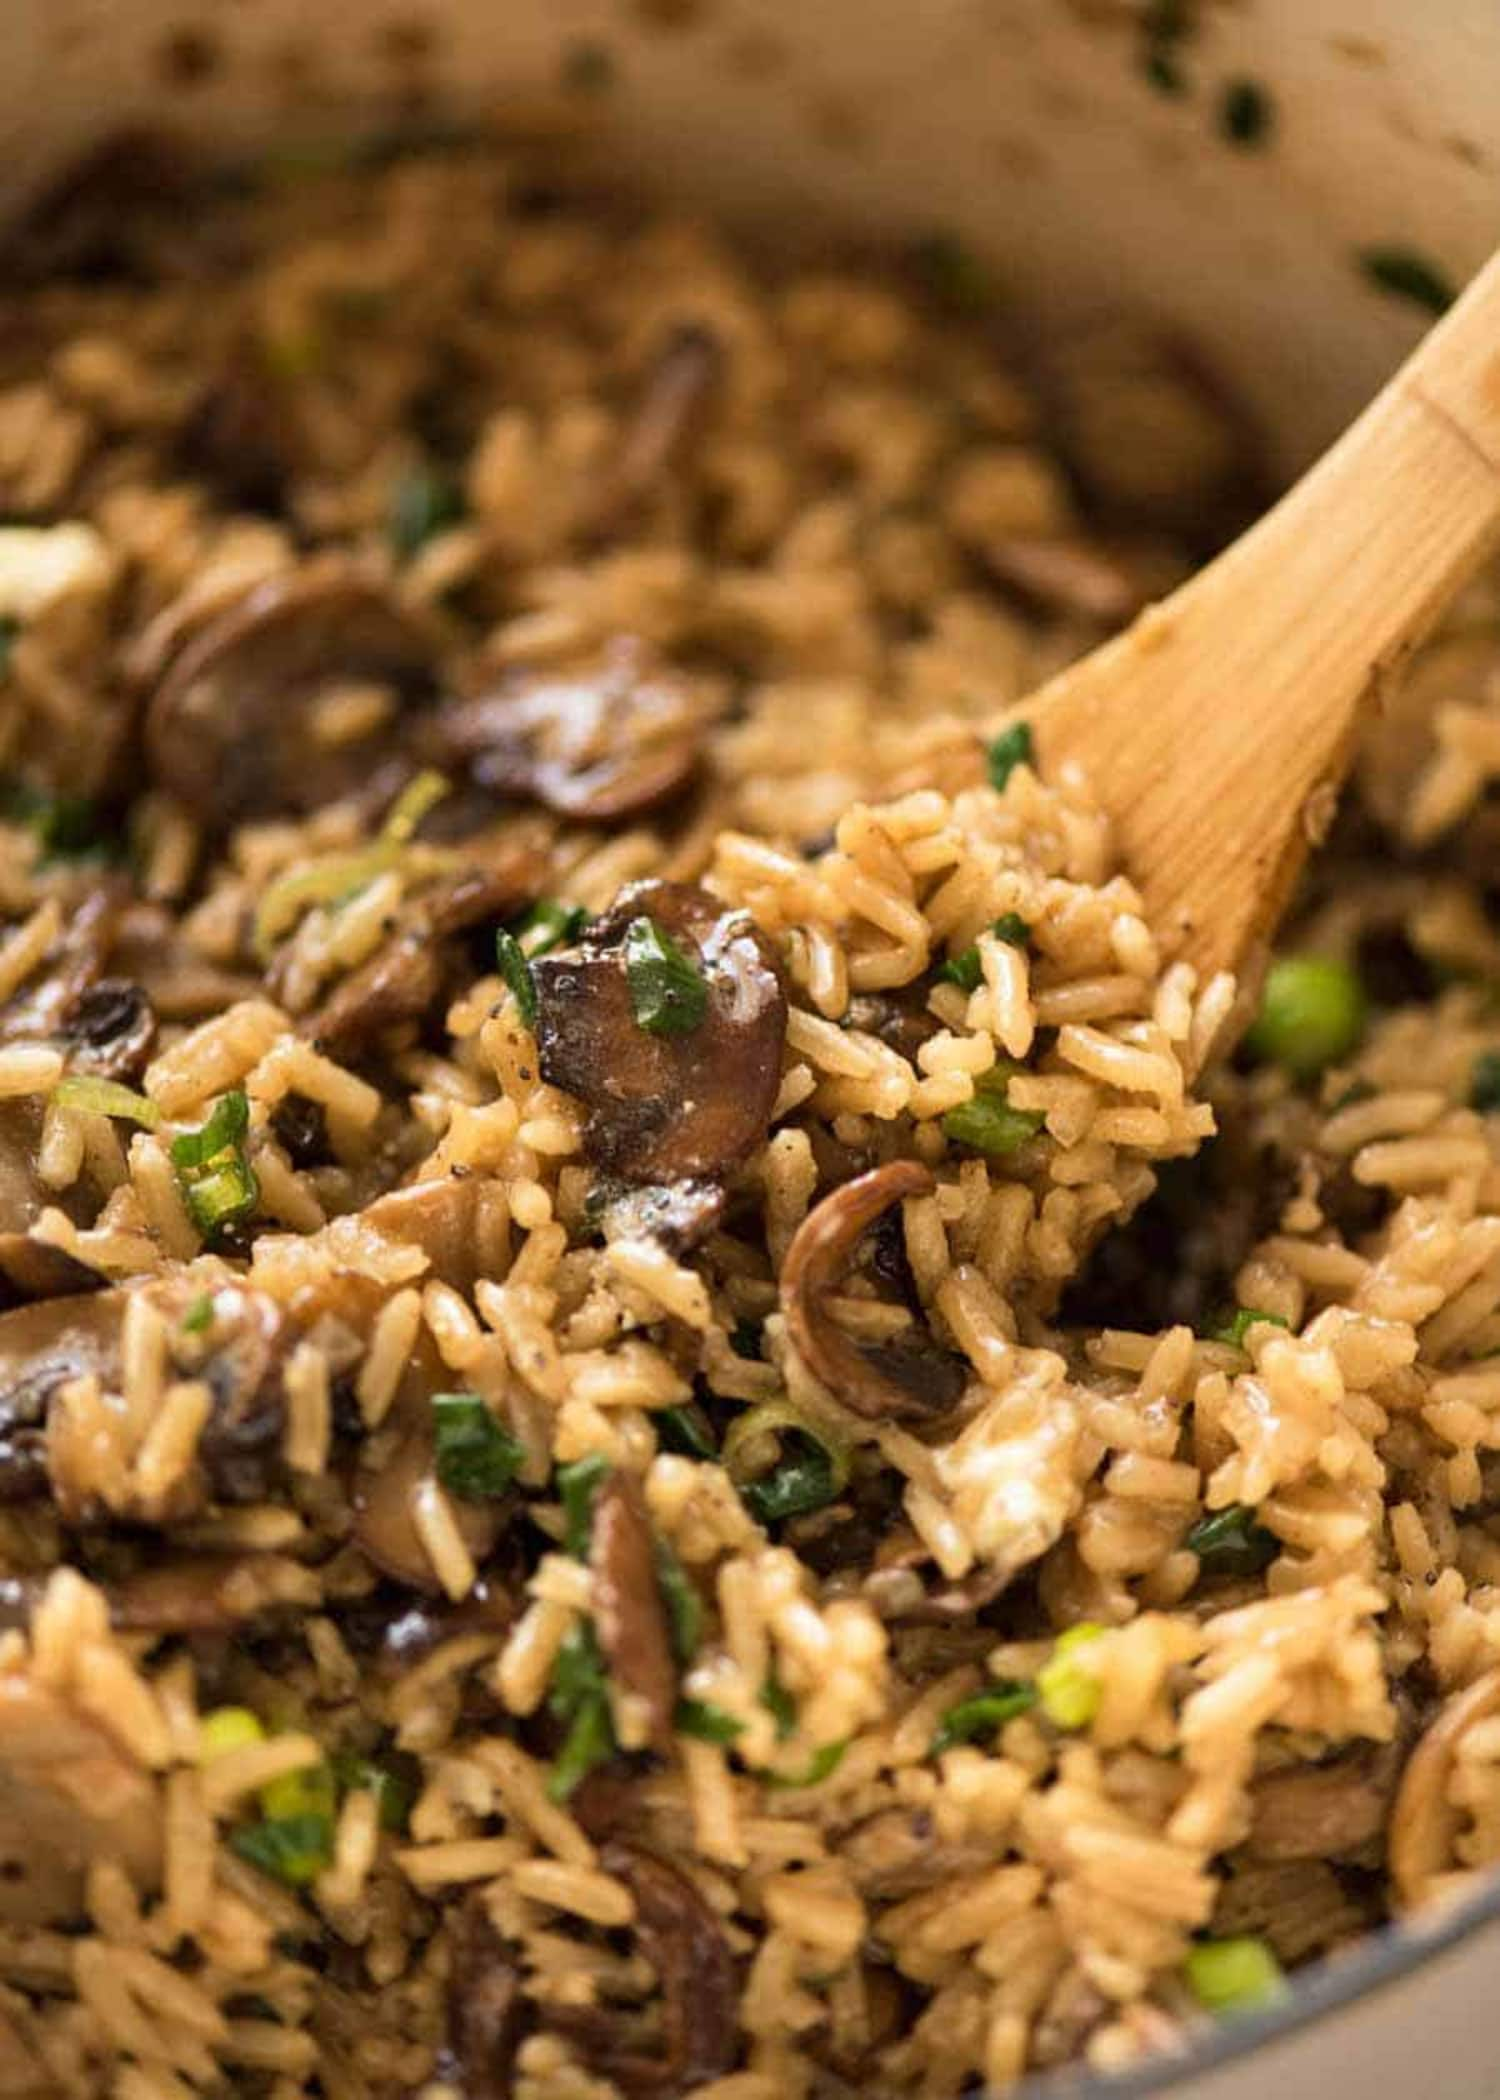 This Absurdly Easy Rice Recipe Is for Mushroom-Lovers